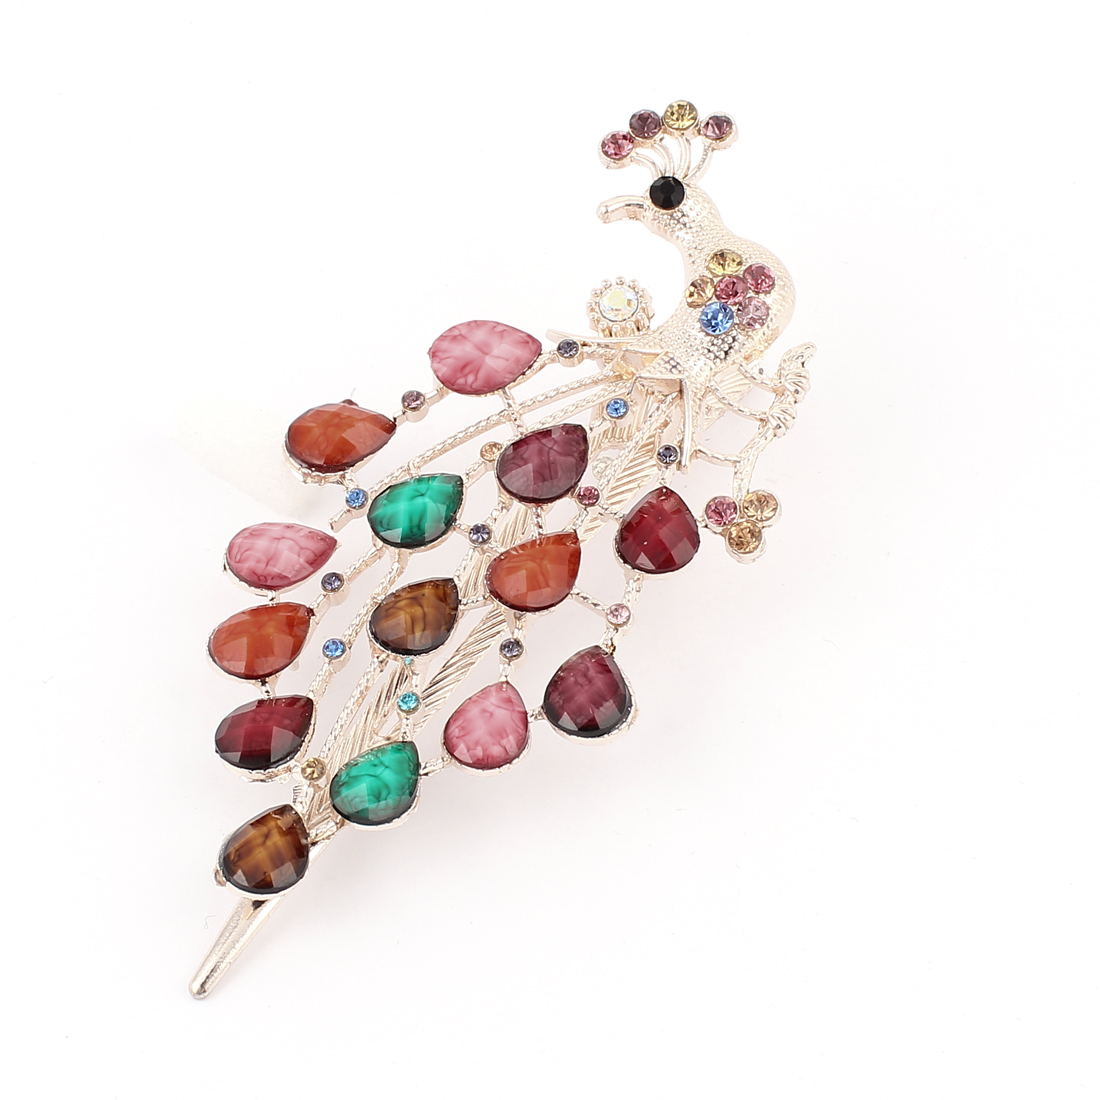 Plastic Crystal Decor Peacock Design Single Prong Alligator Hair Clip Colorful